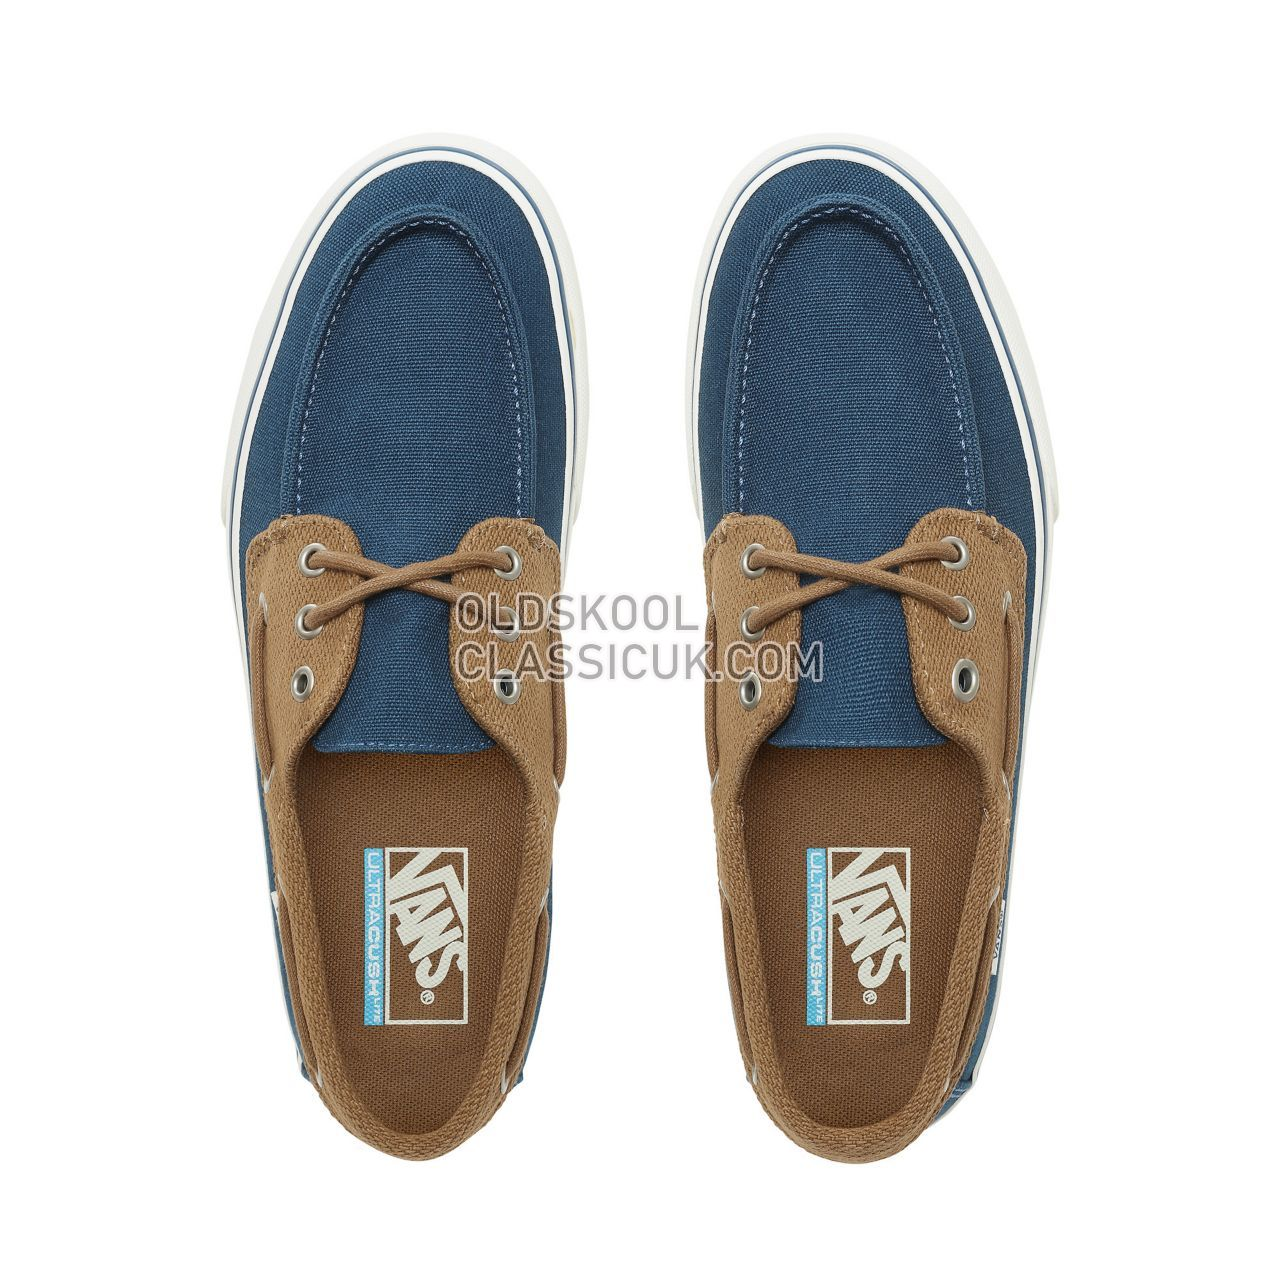 6d68241601 Vans Chauffeur SF Sneakers Mens Sailor Blue Breen VN0A3MUBVLN Shoes - £52